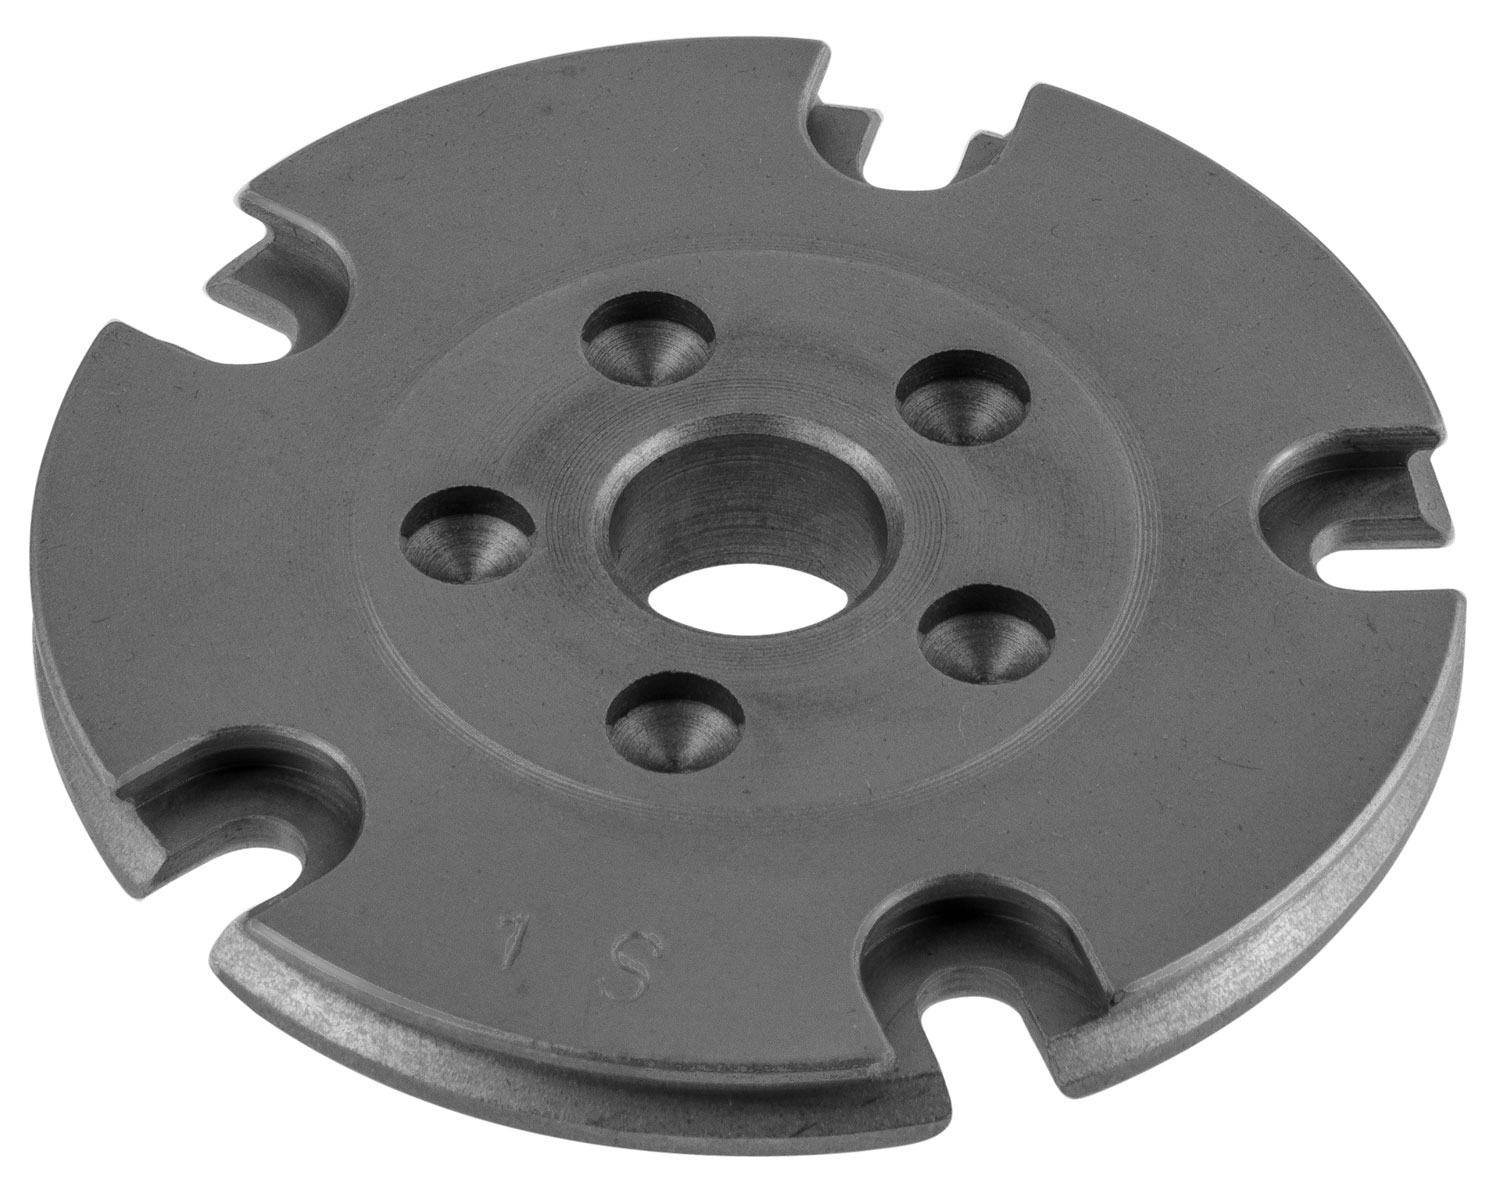 LEE 90920 LM SHELL PLATE #19s